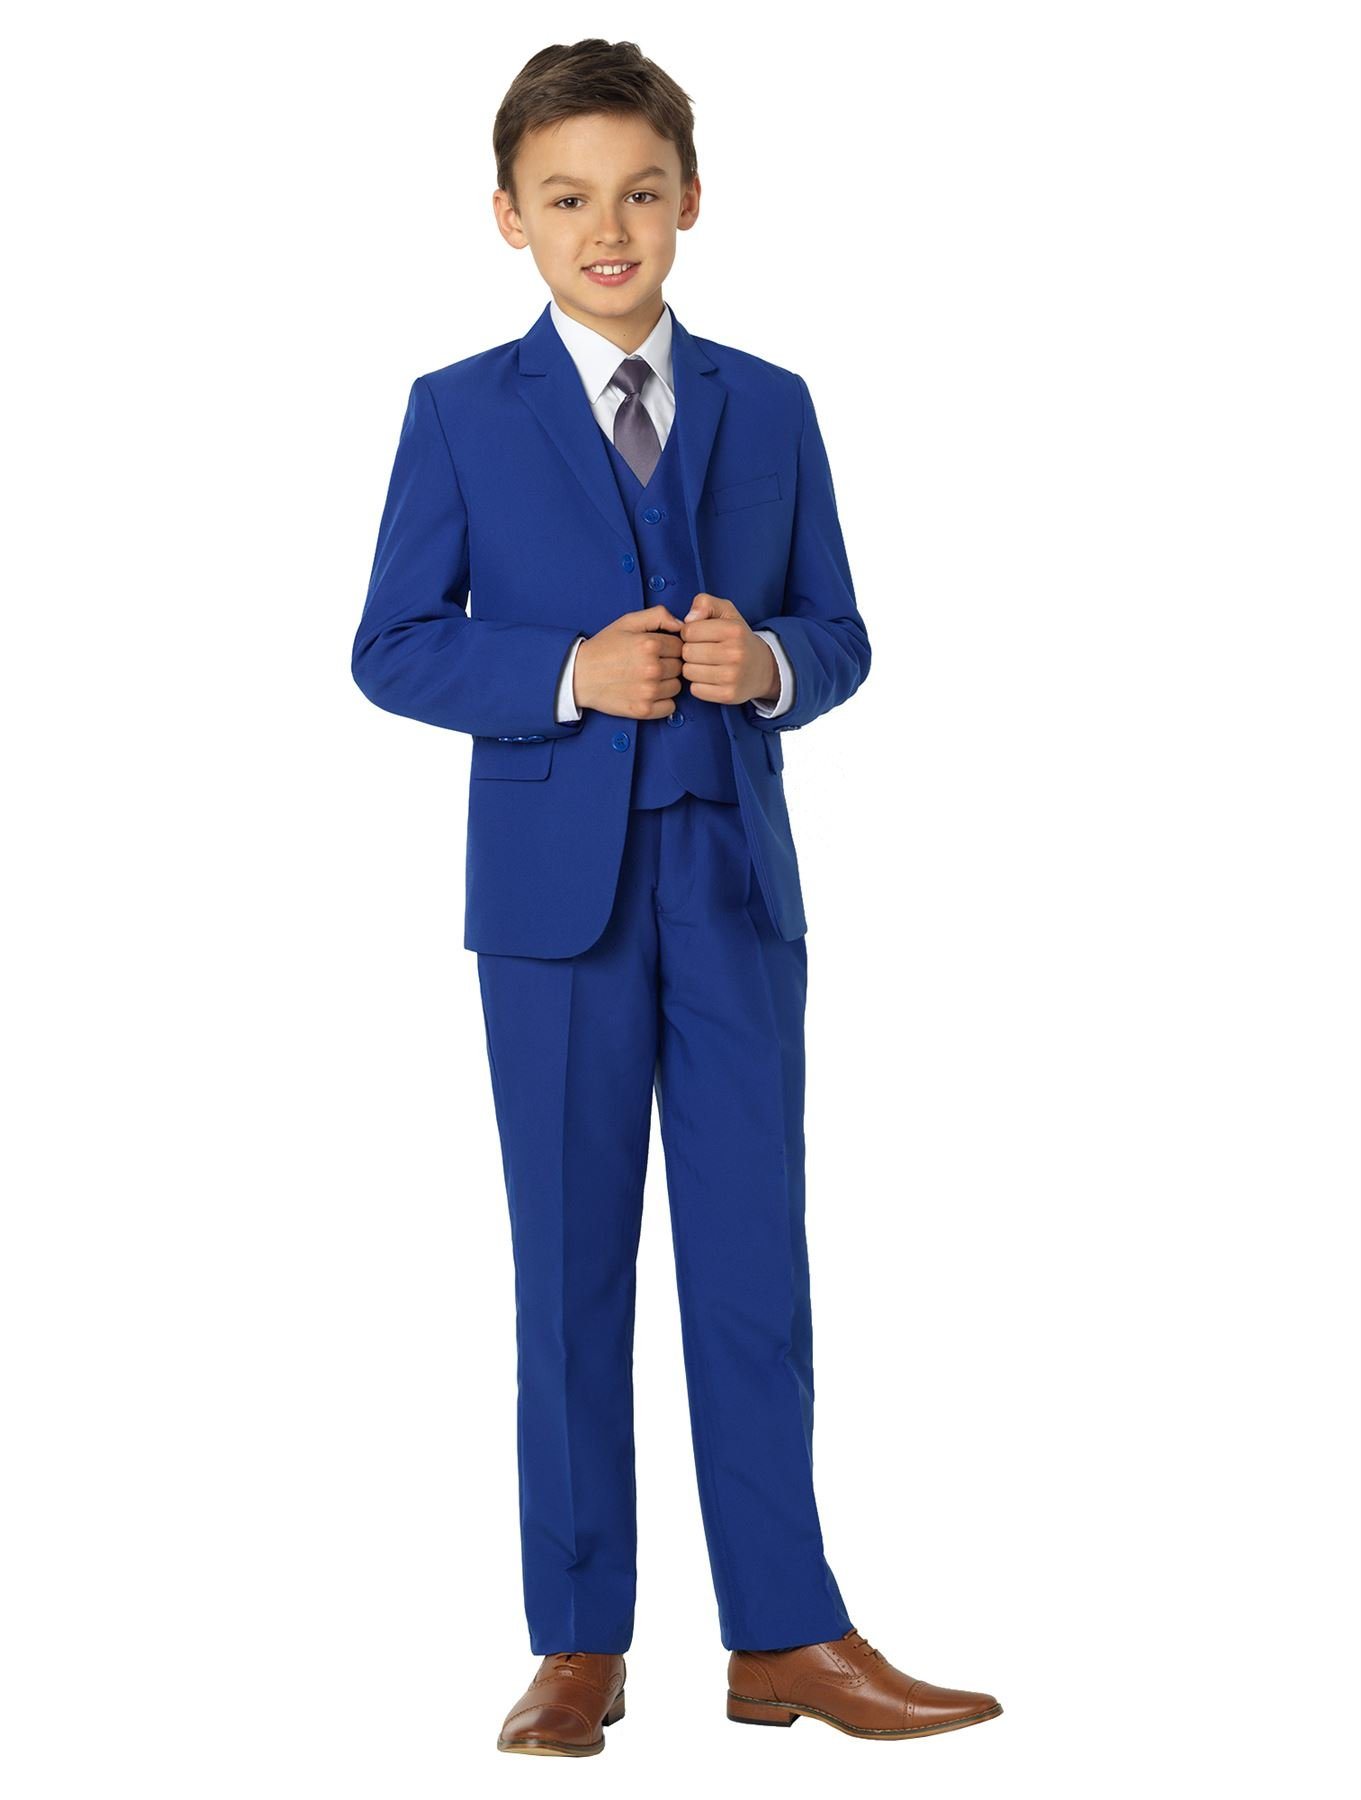 46832a5fd Get Quotations · Shiny Penny Boys Blue Formal 5 Piece Suit Set with Shirt &  Vest.